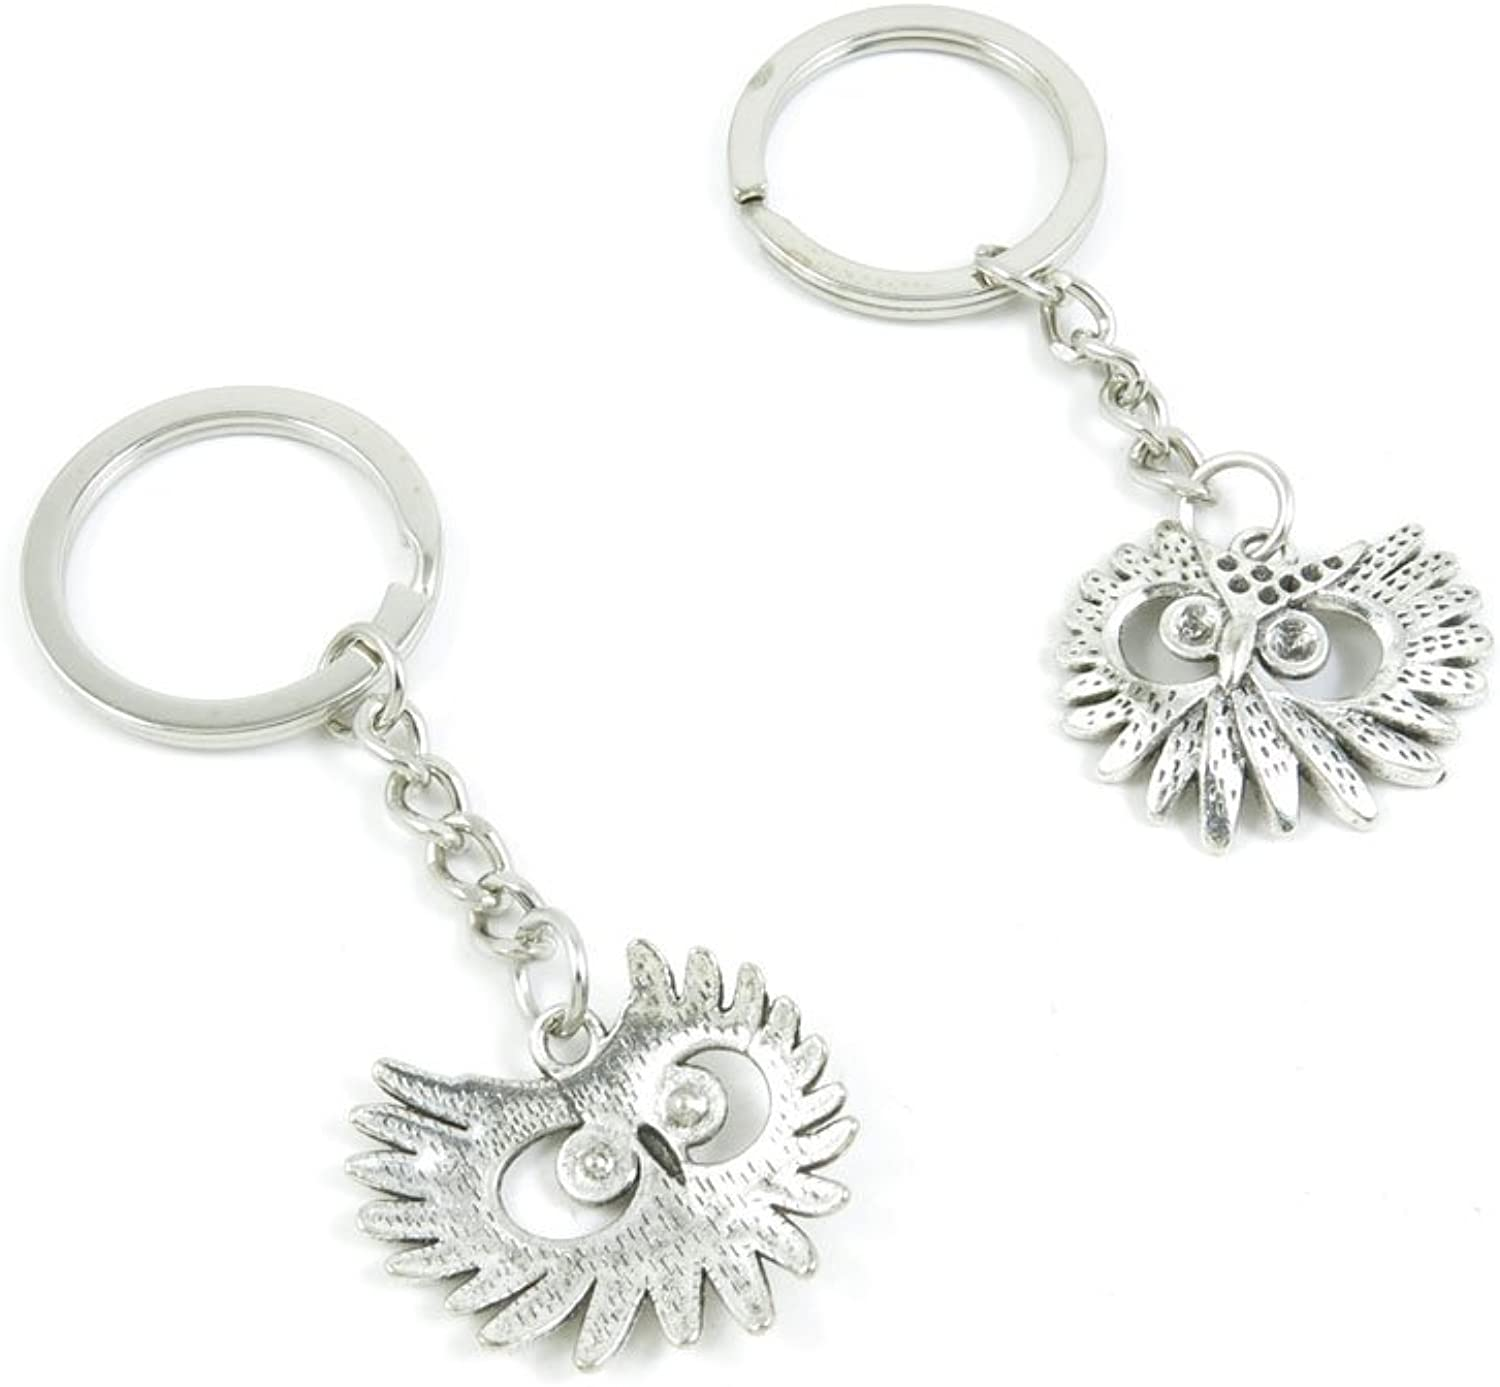 Keyrings Keychains Door Car Keys Rings Tags Chain Antique Silver Tone Bulk Lots P3MR7X Owl